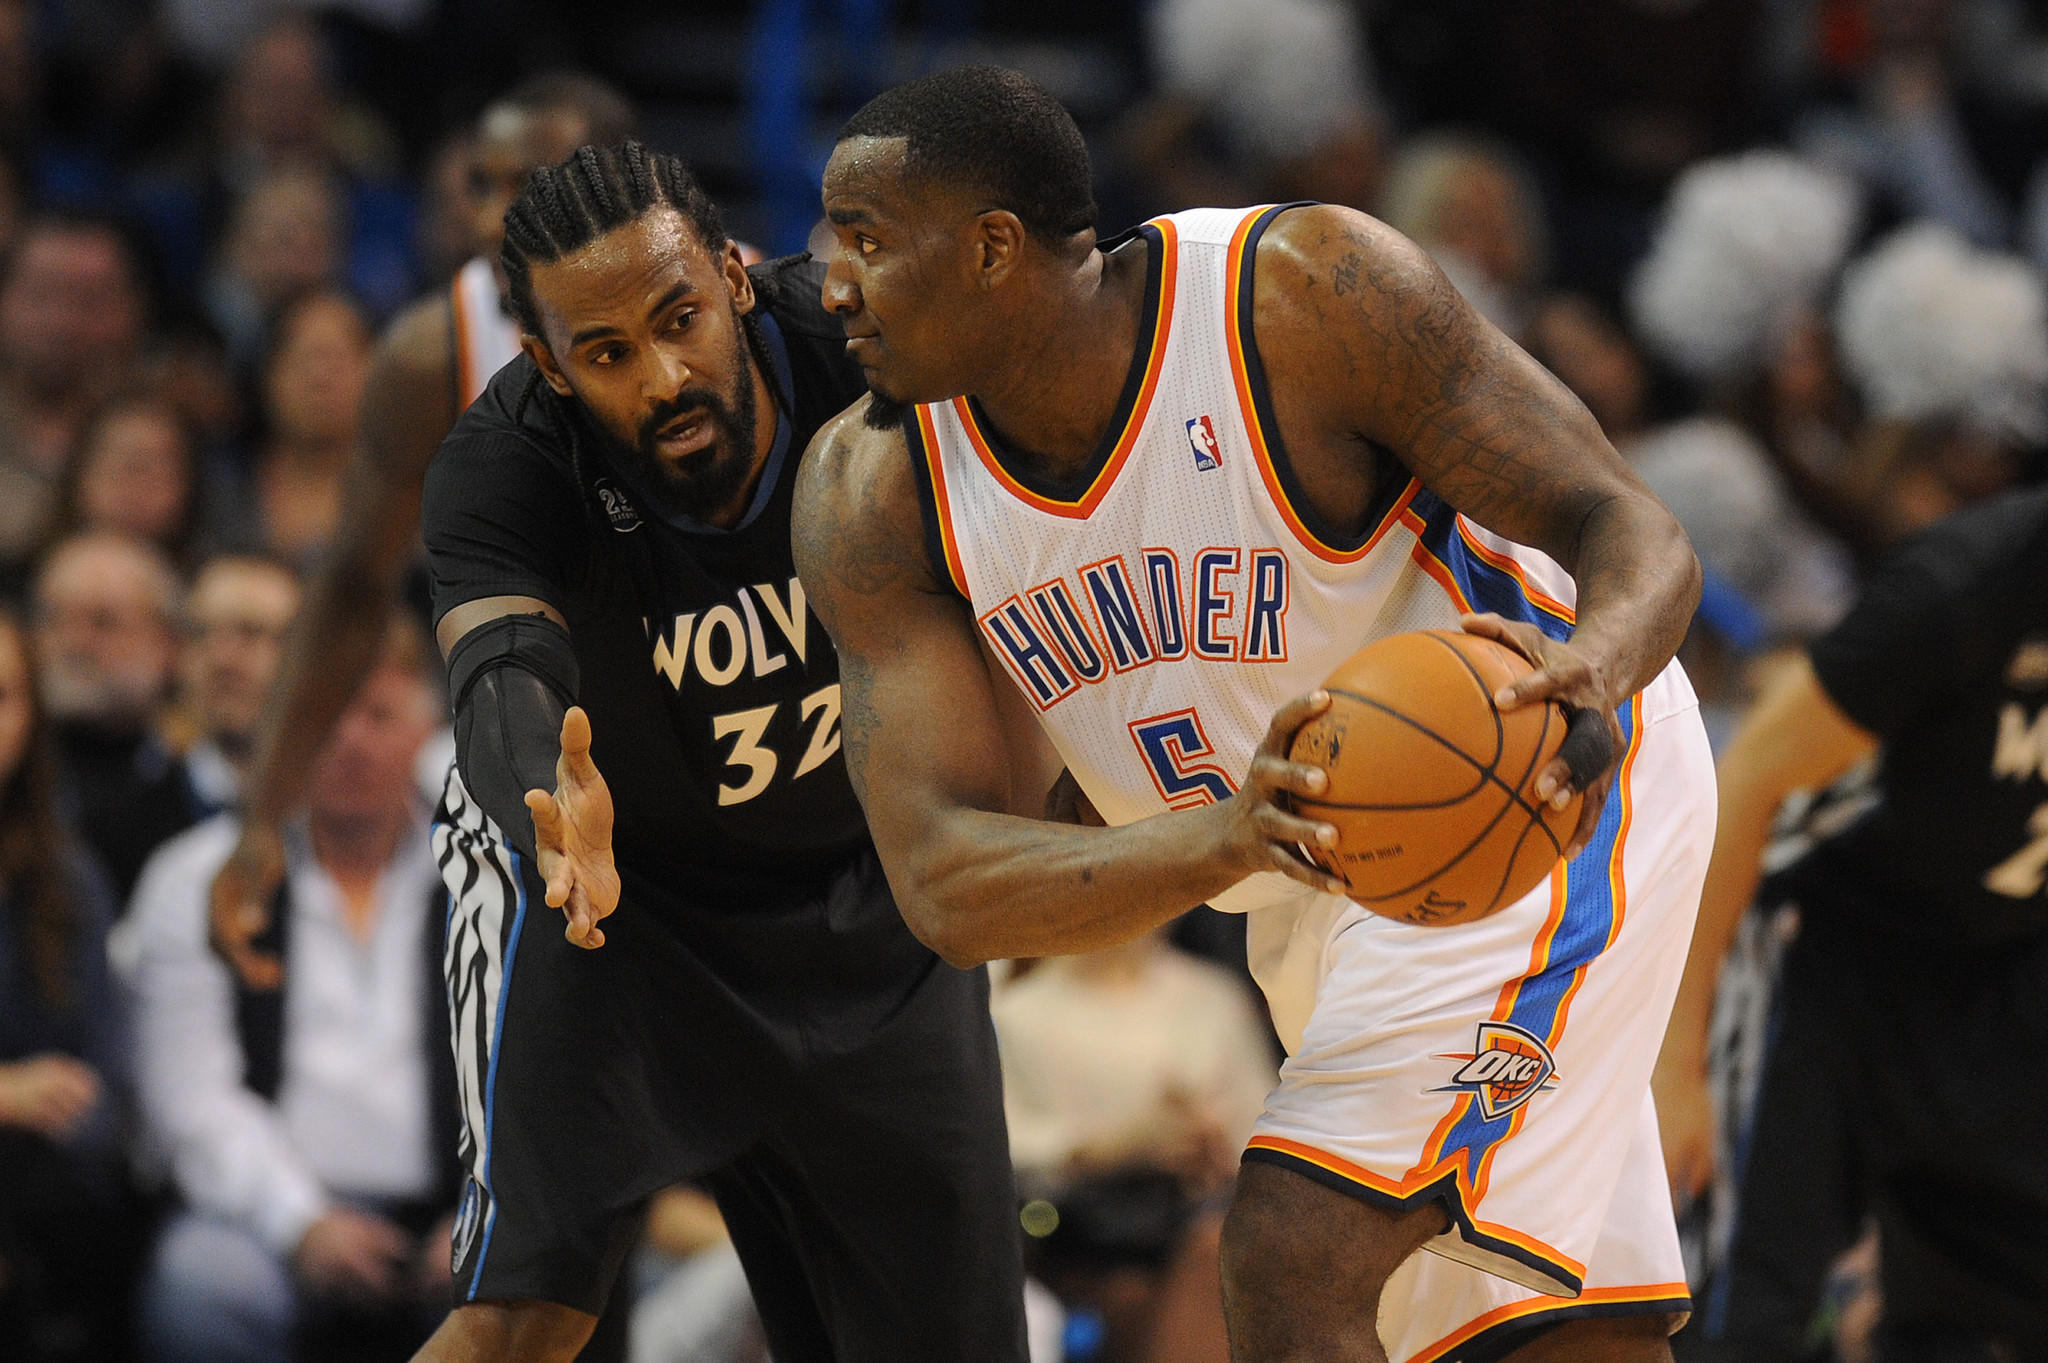 Oklahoma City Thunder center Kendrick Perkins holds the ball as Minnesota Timberwolves center Ronny Turiaf defends.